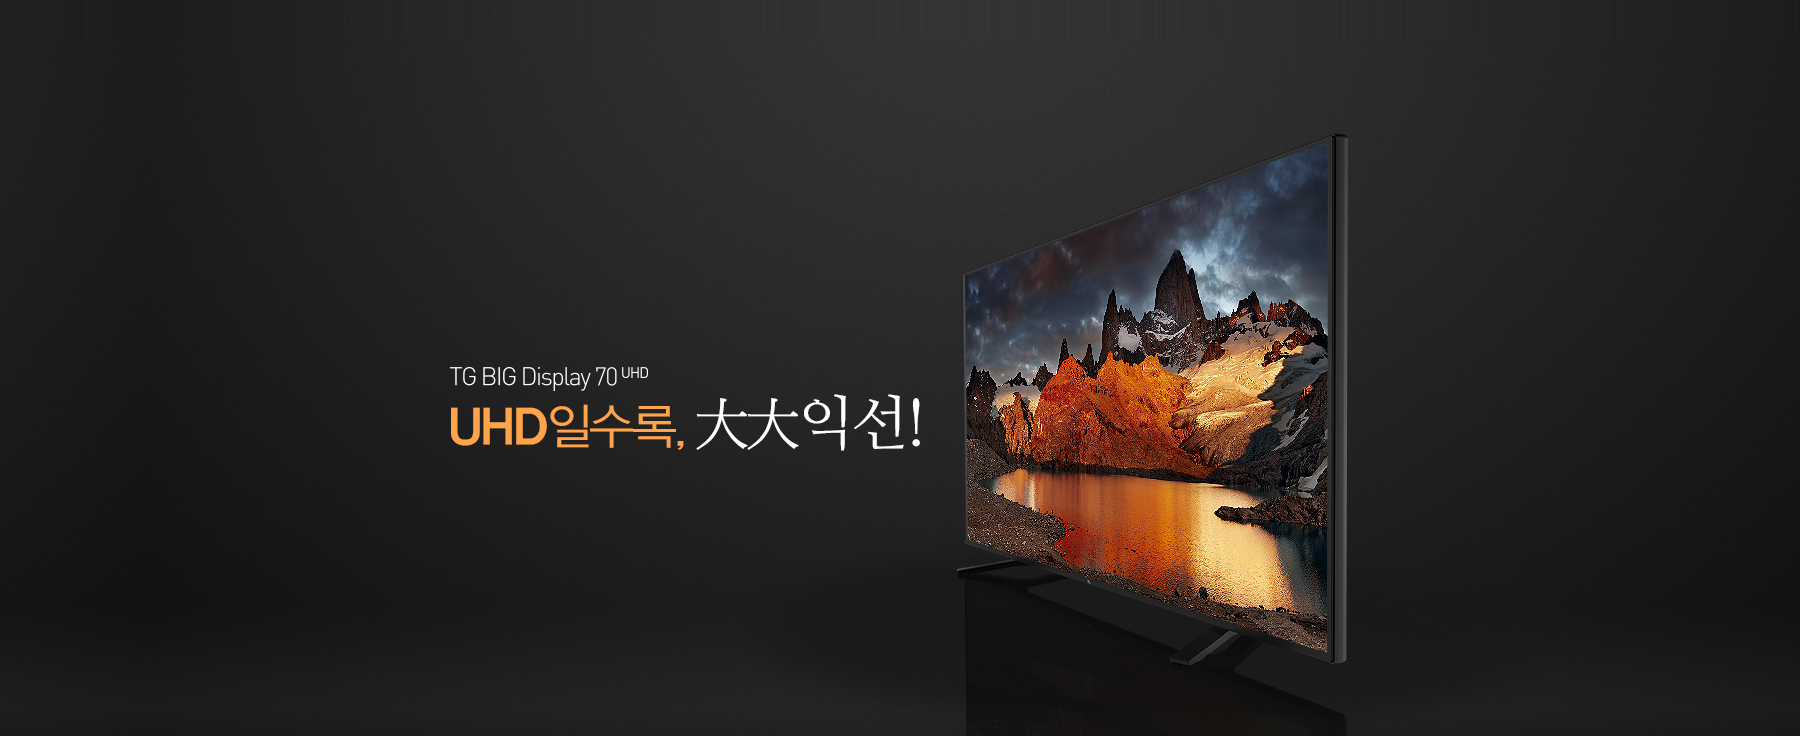 BigDisplay70UHD